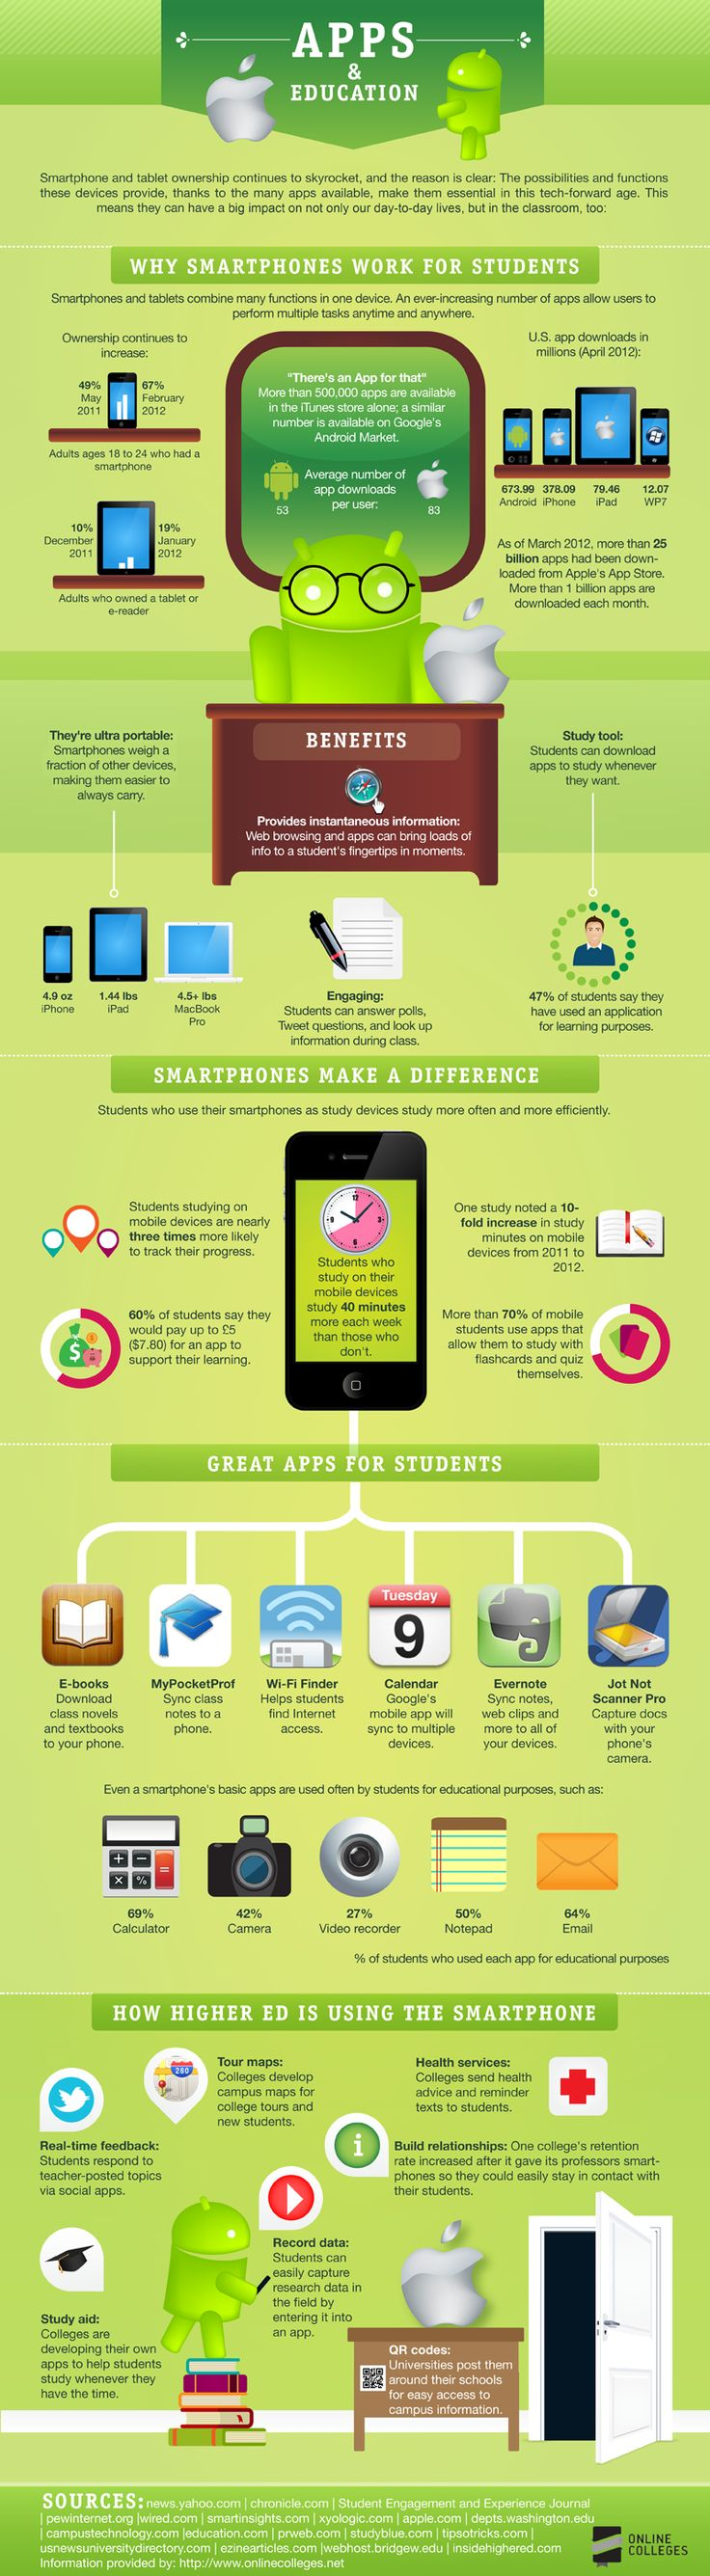 #Infographic - The role of smartphones in education, why they work for students: http://l.pi.mu/VORPEn